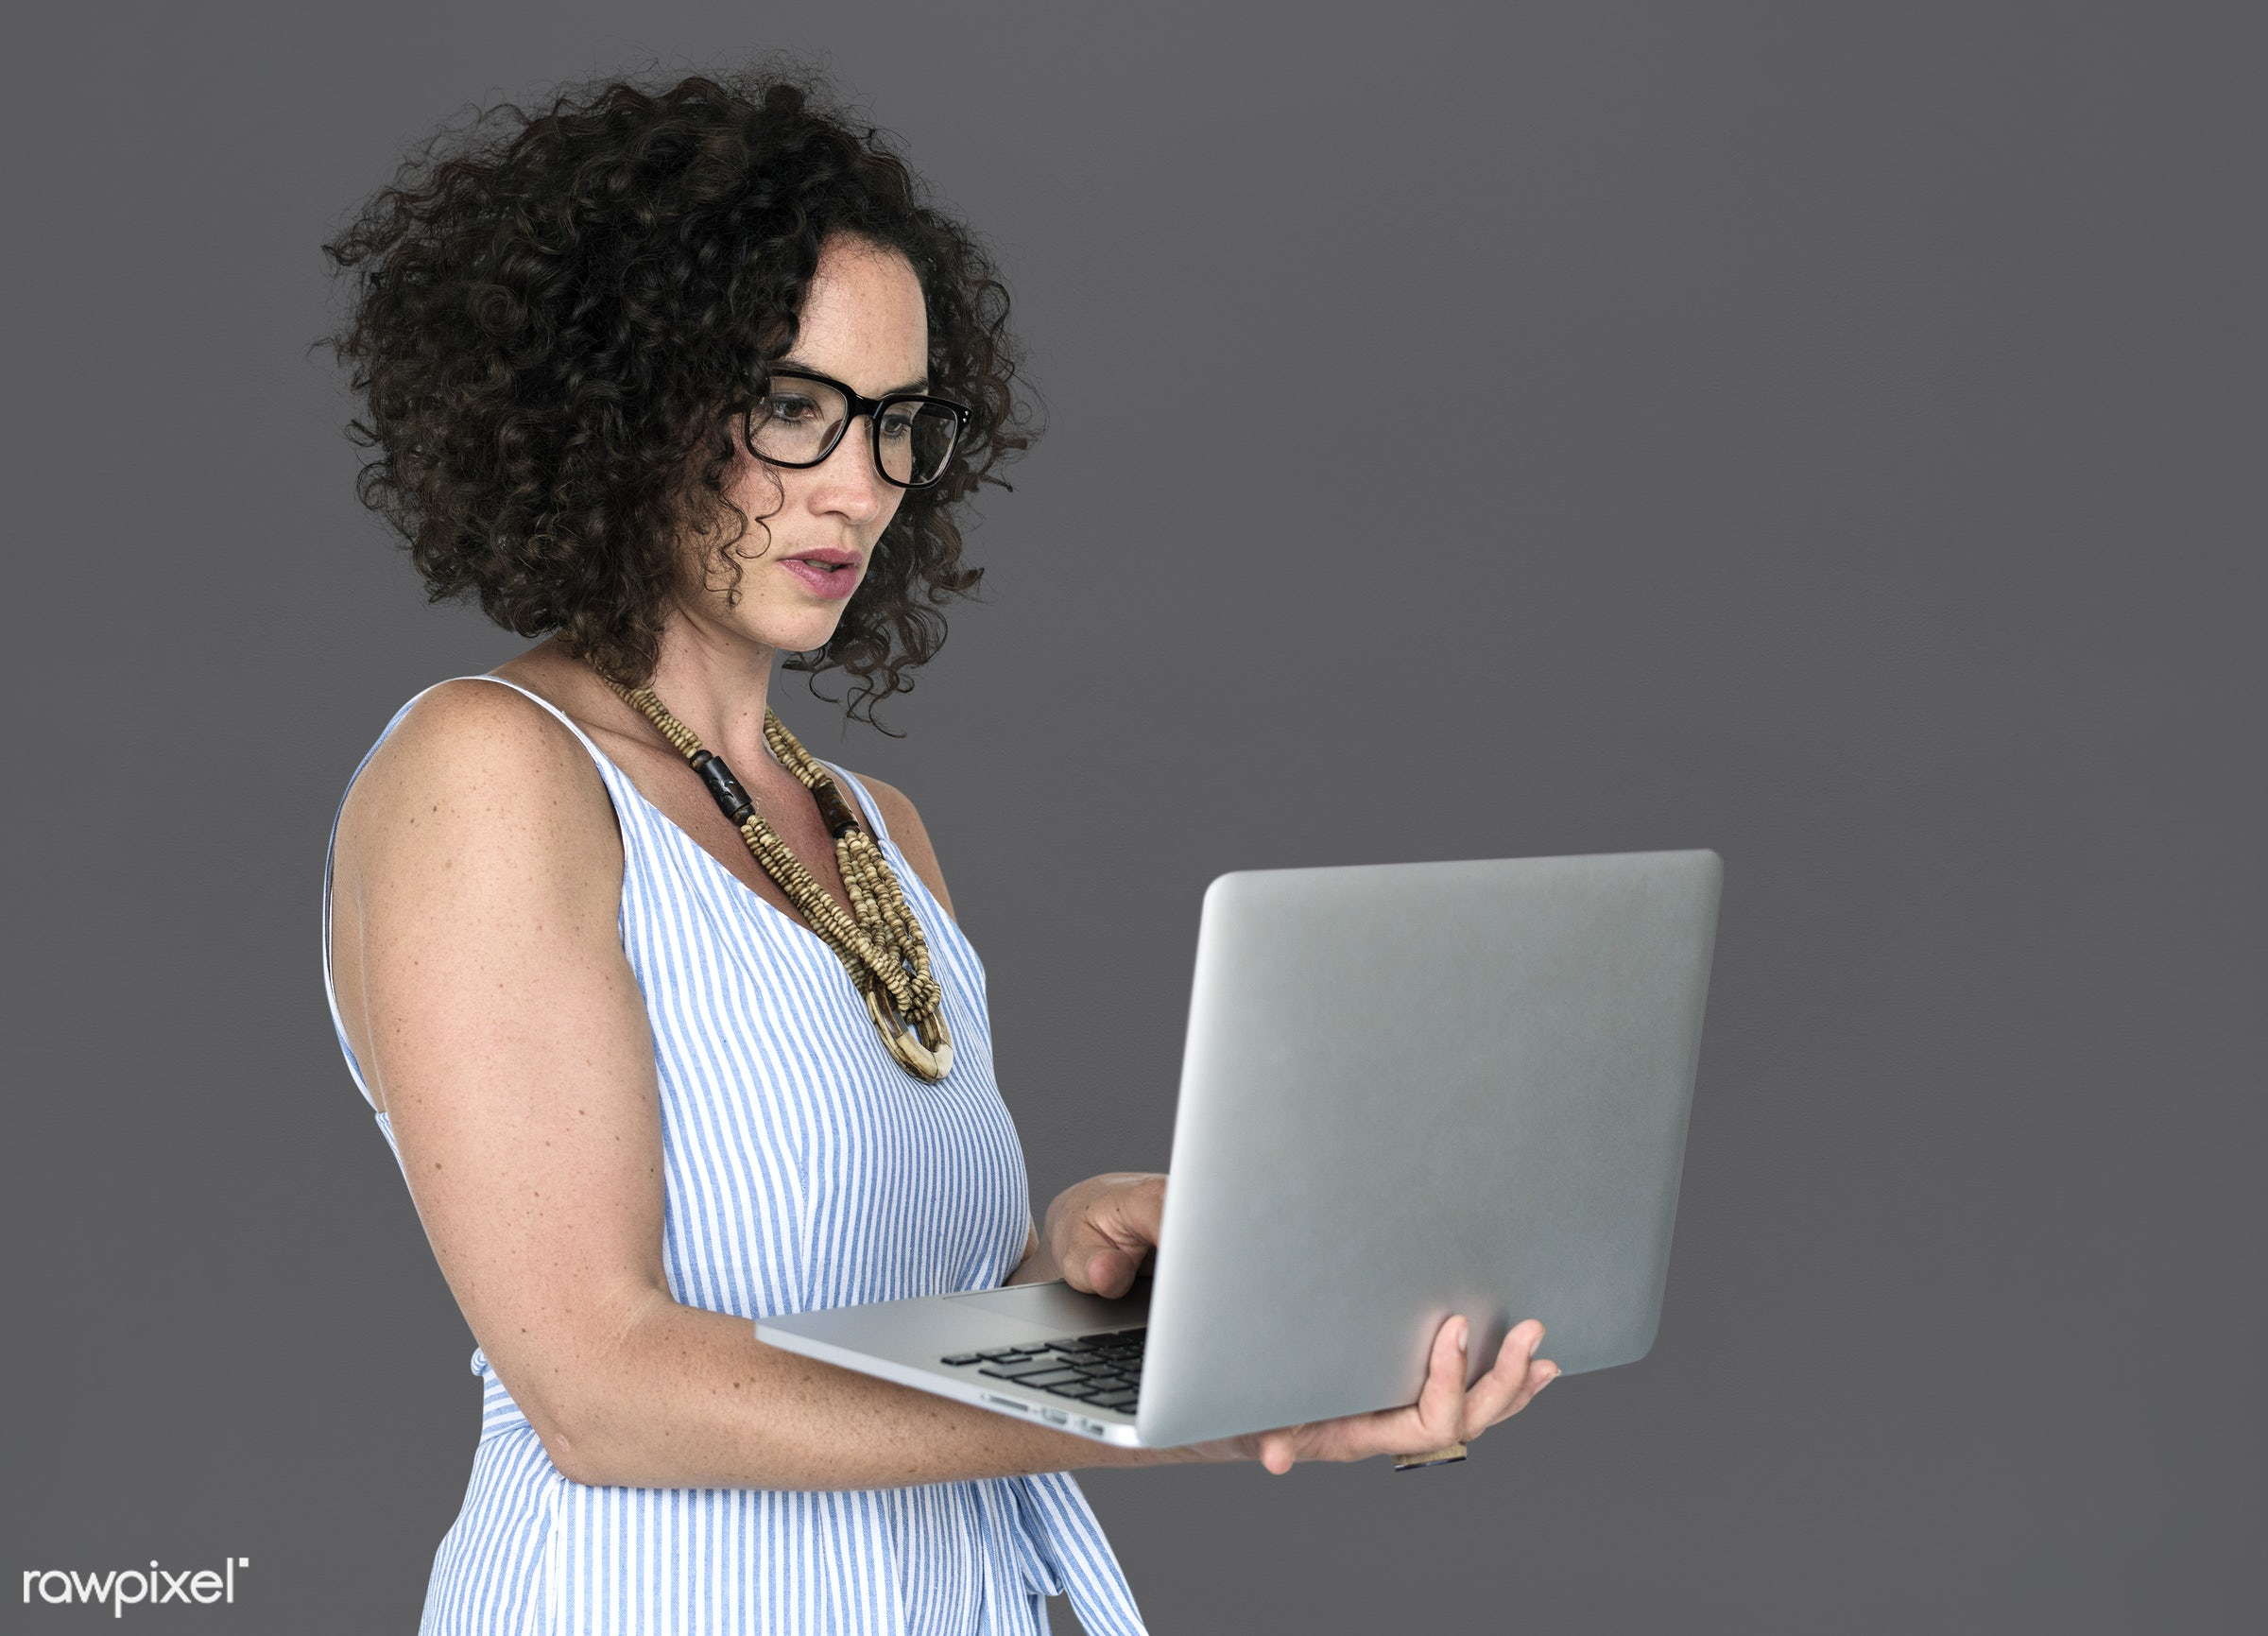 expression, studio, casual attire, person, technology, concentrating, people, caucasian, pose, girl, solo, woman, casual,...